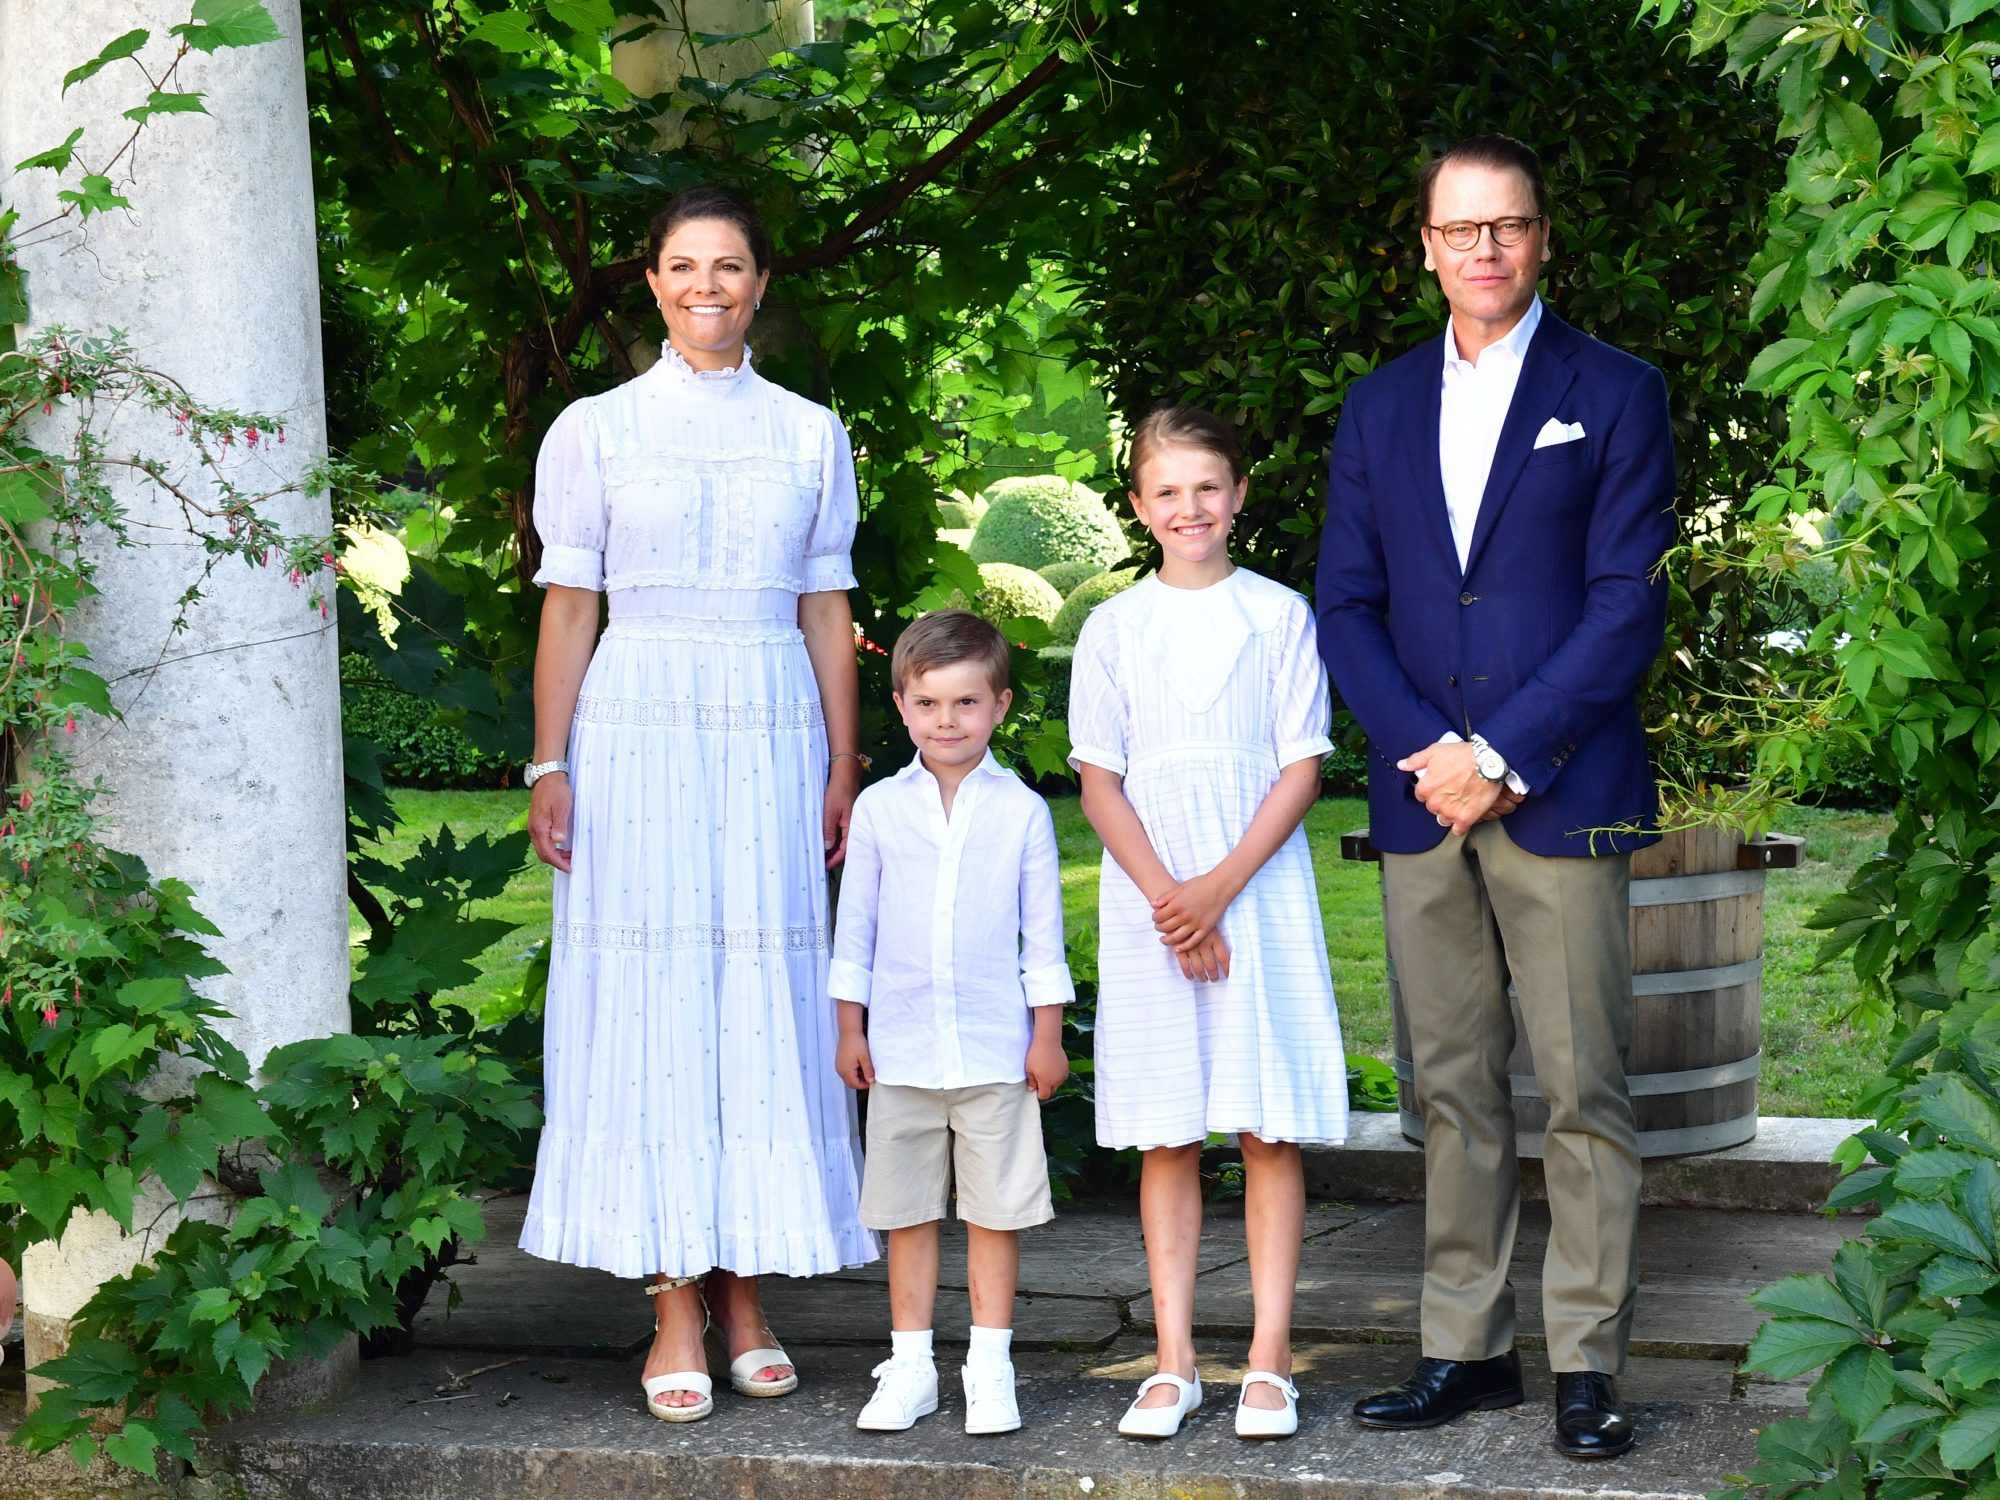 Princess Victoria and family